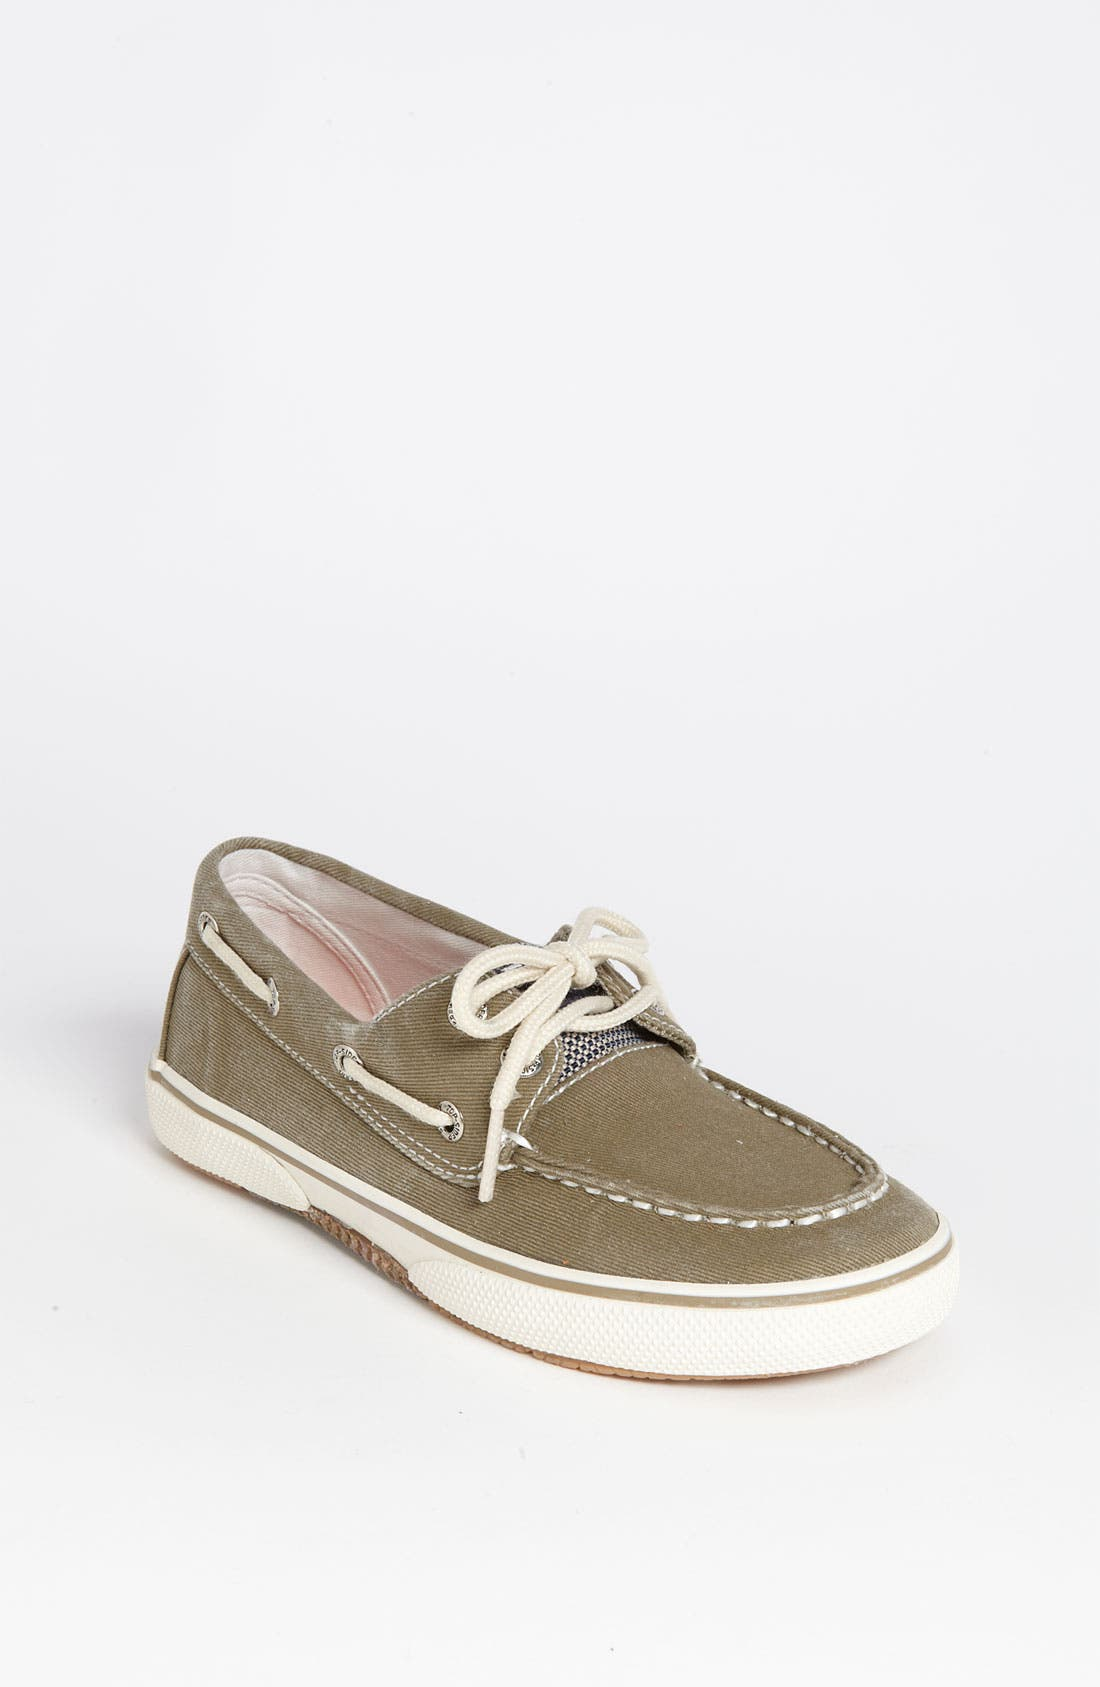 Alternate Image 1 Selected - Sperry Top-Sider® 'Halyard' Boat Shoe (Walker, Toddler, Little Kid & Big Kid)